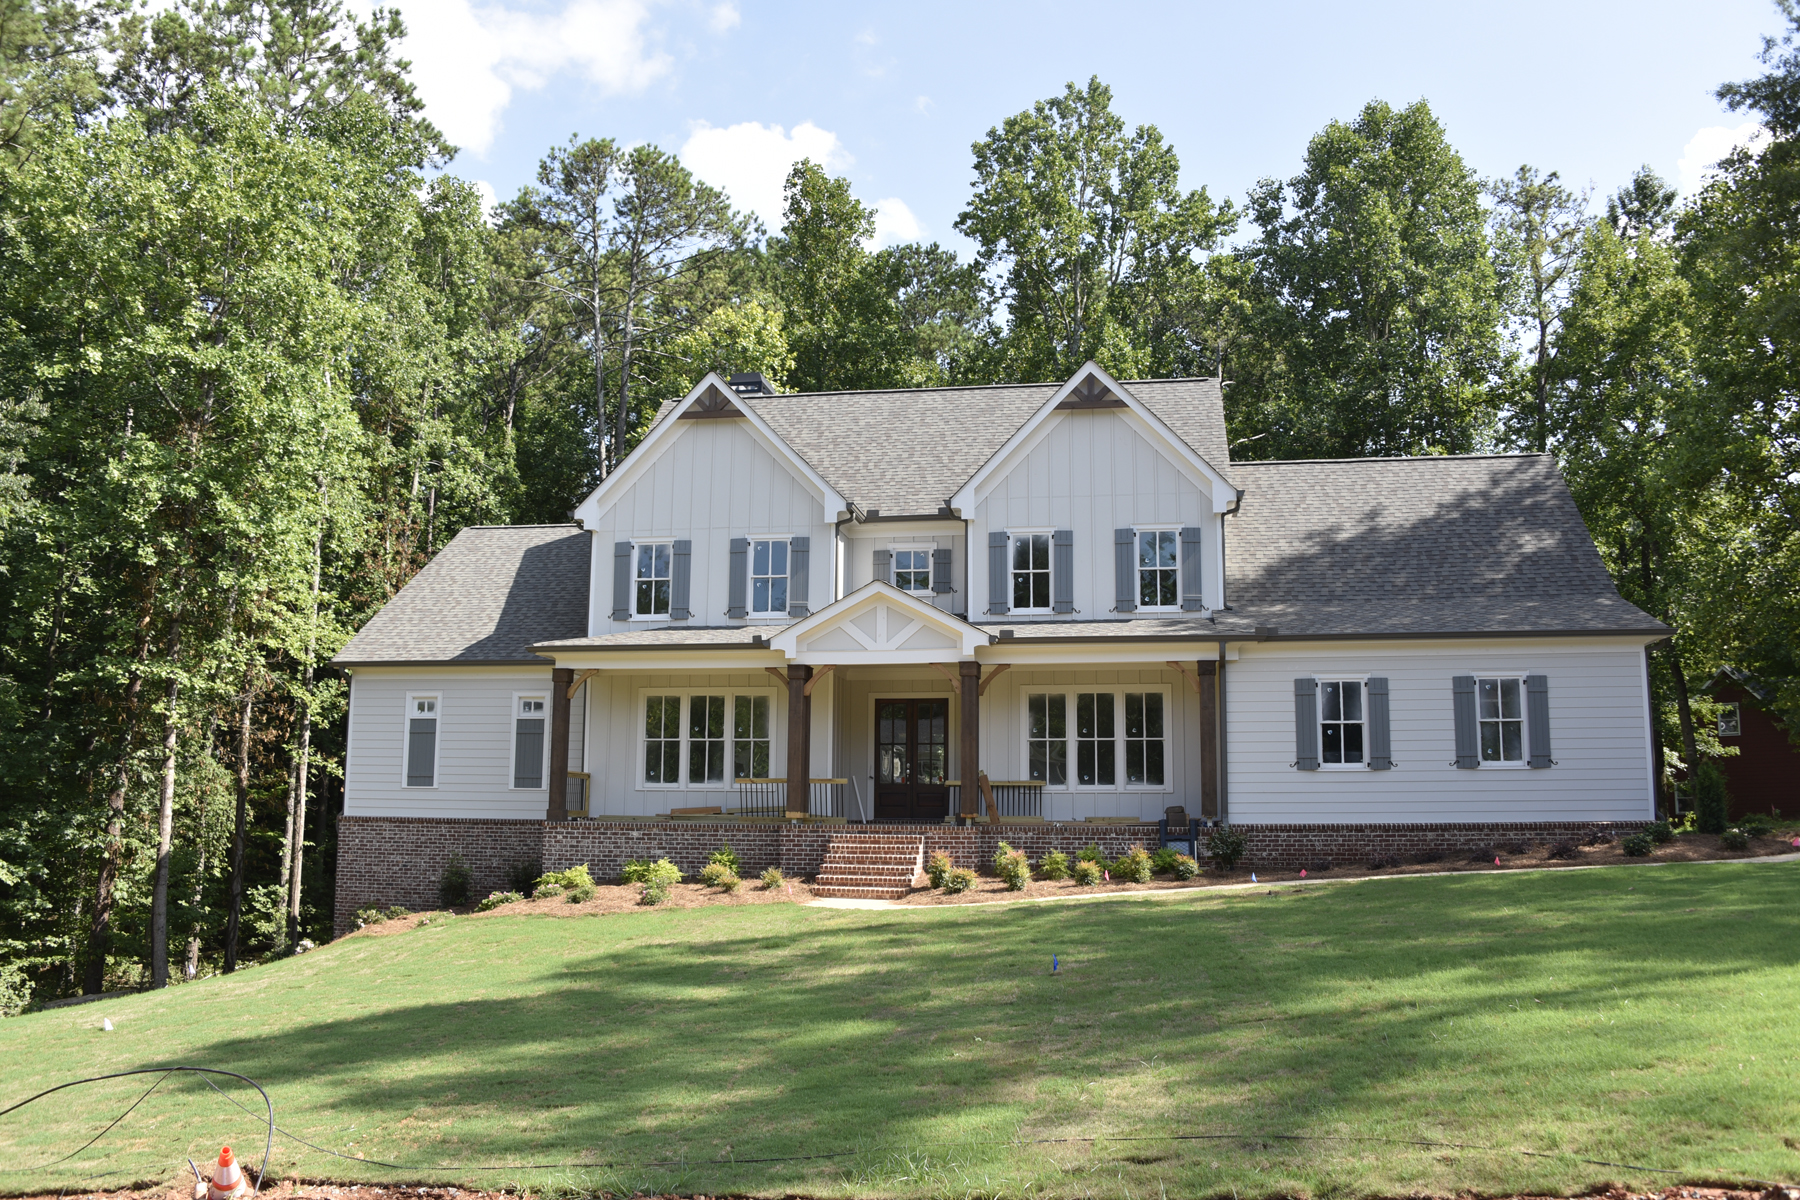 Single Family Homes for Active at Owners on Main New Construction Woodstock Home 203 Rosewood Circle Woodstock, Georgia 30188 United States